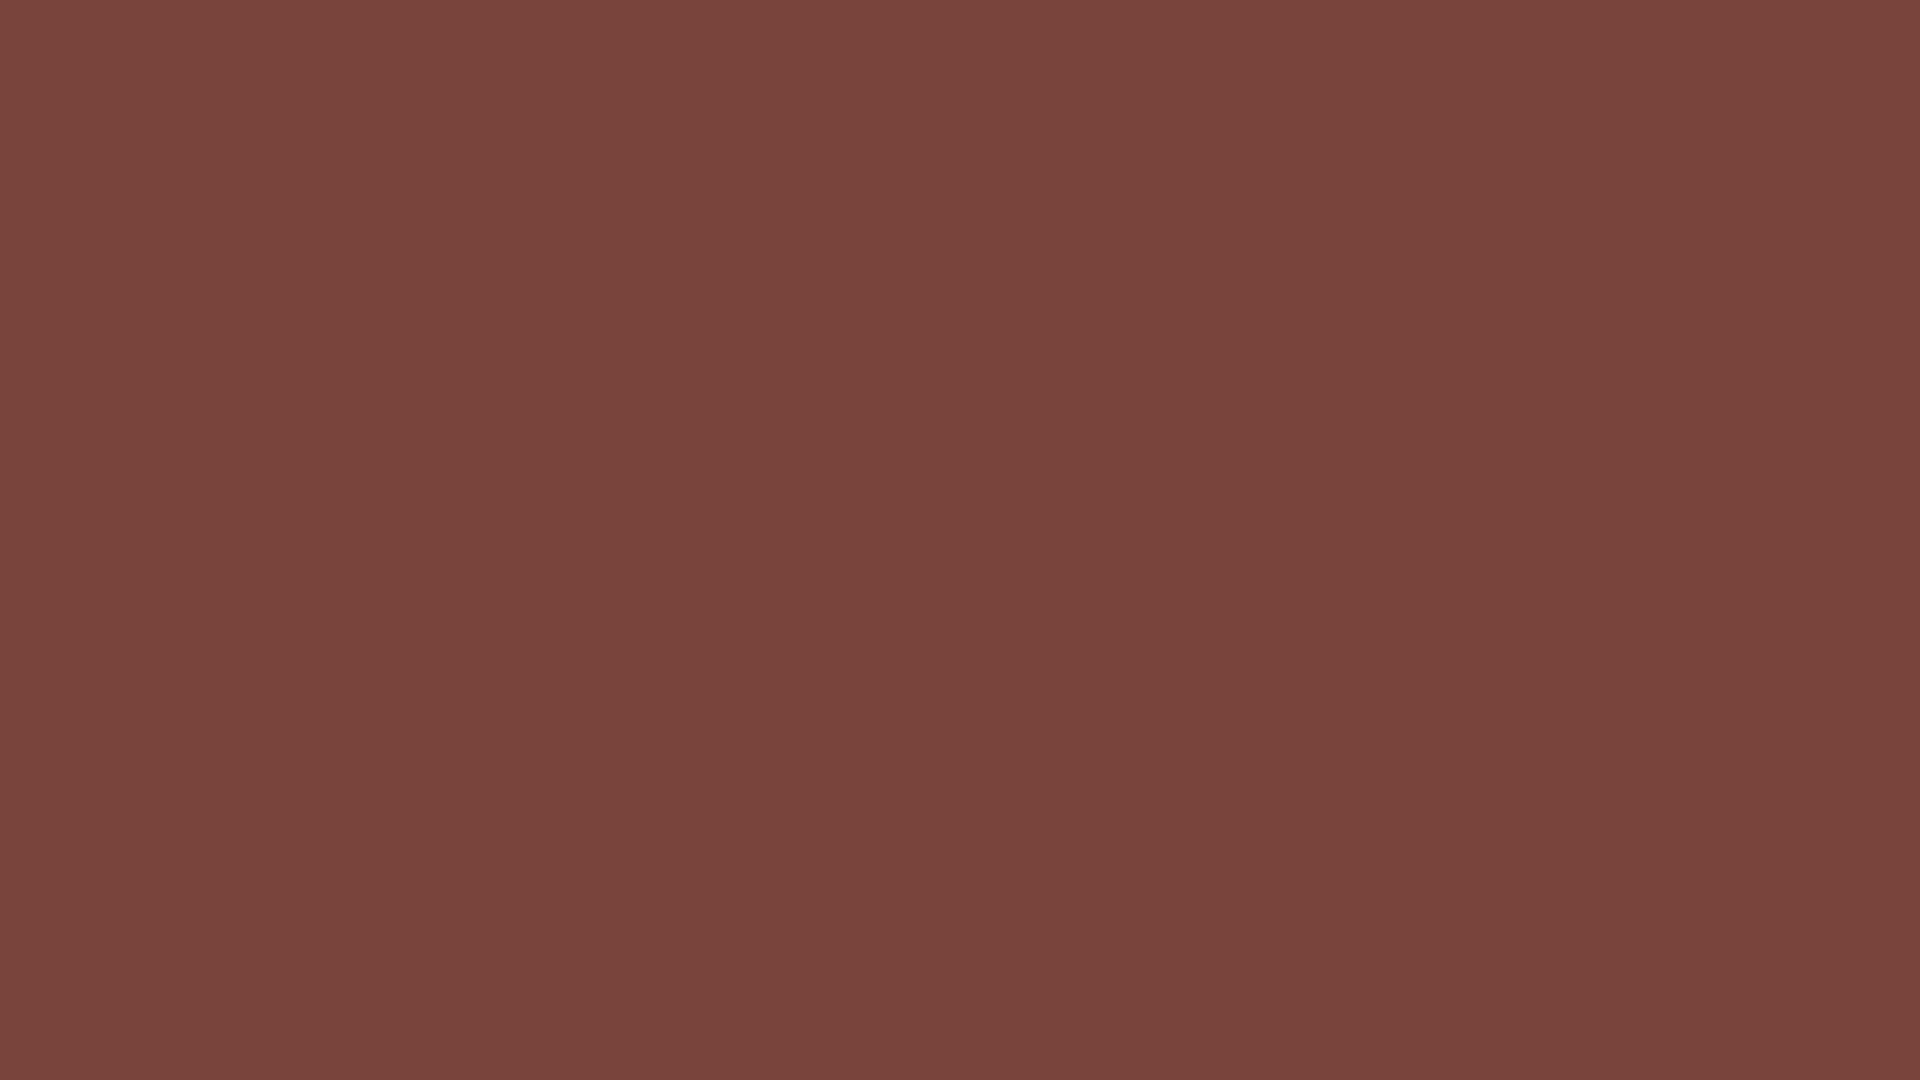 1920x1080 Medium Tuscan Red Solid Color Background